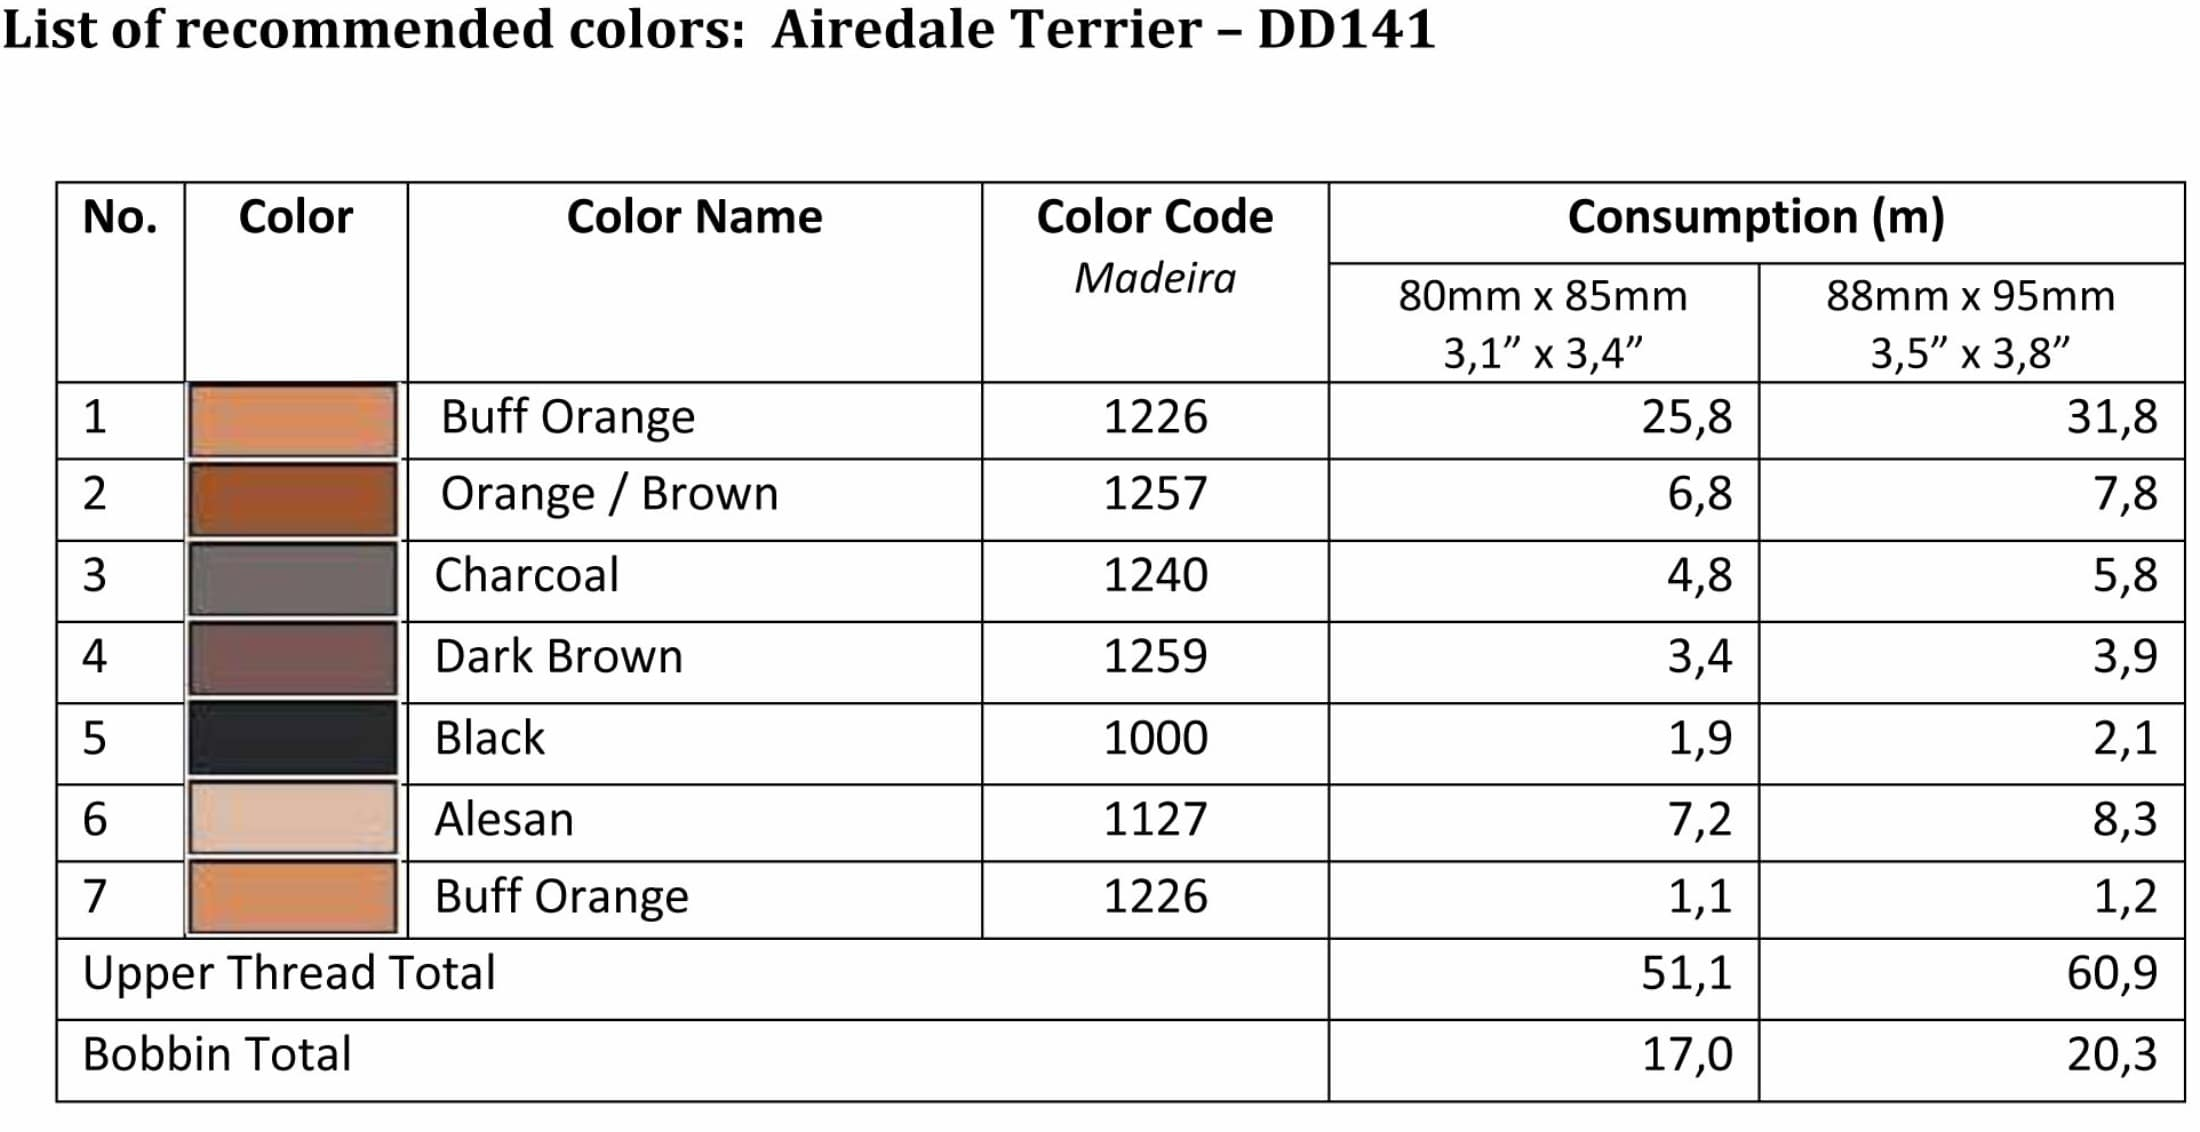 List of recommended colors -DD141